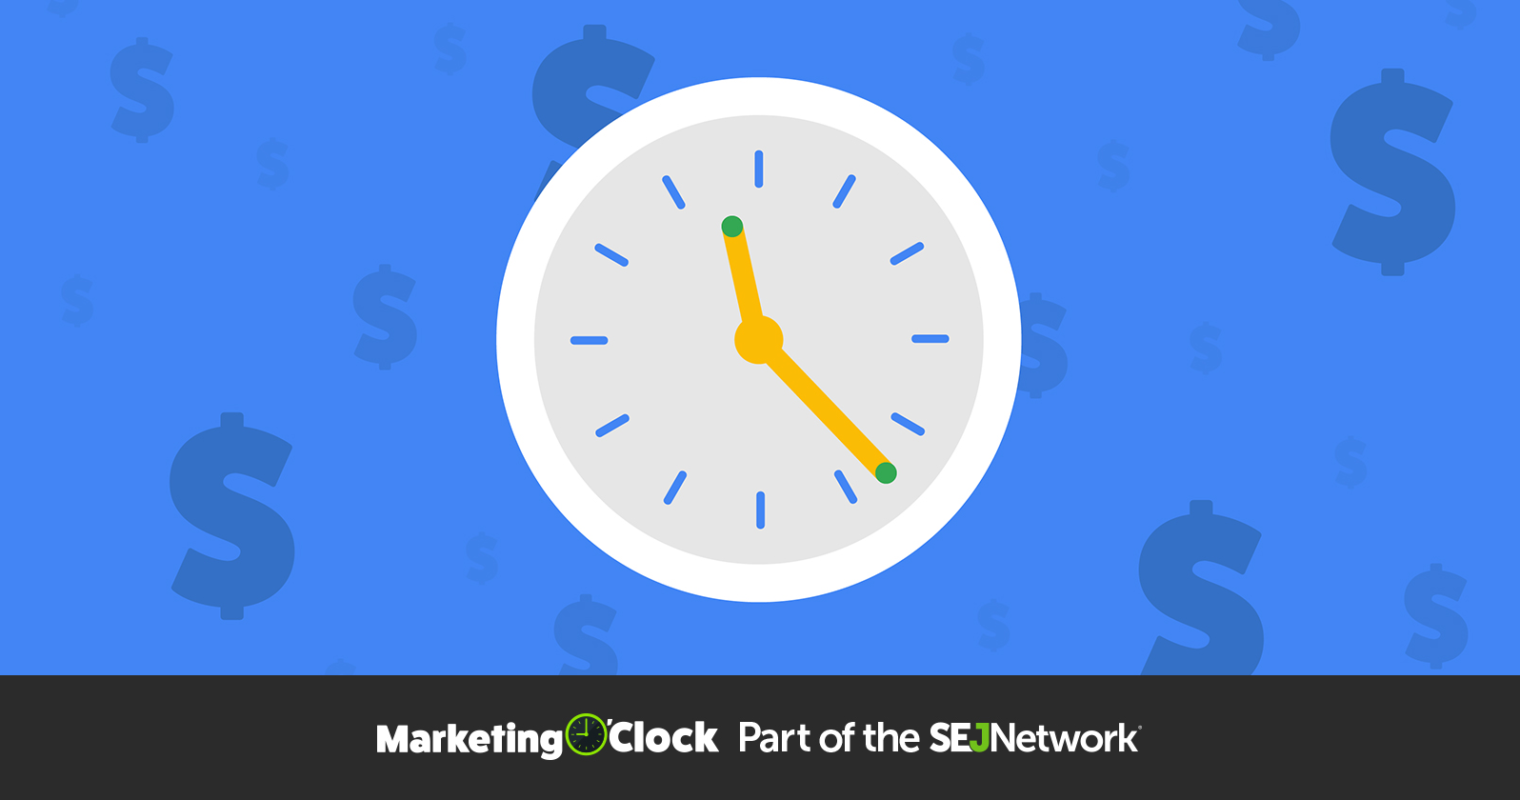 Google Ads Conversion Time Reporting, Facebook Ads in Search Results & More News from This Week [PODCAST]